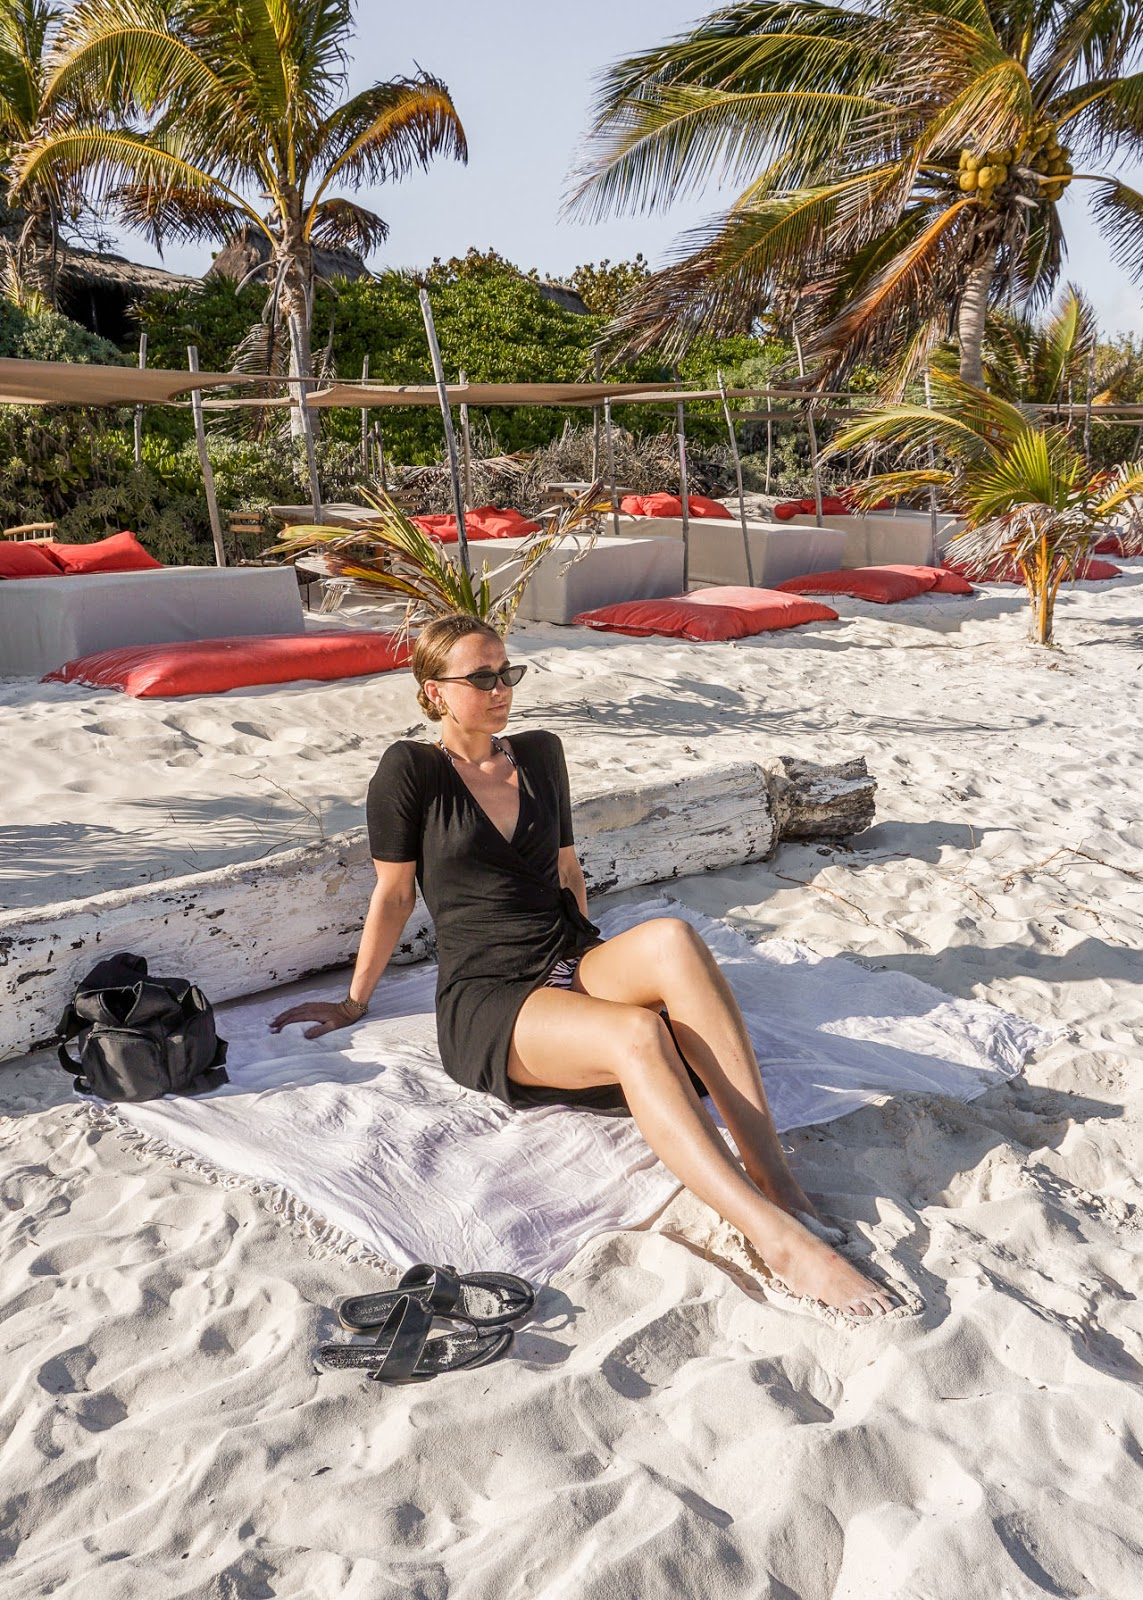 Mexico - Tulum - In My Dreams - Beach babe Life - Outfit - Fashion blogger